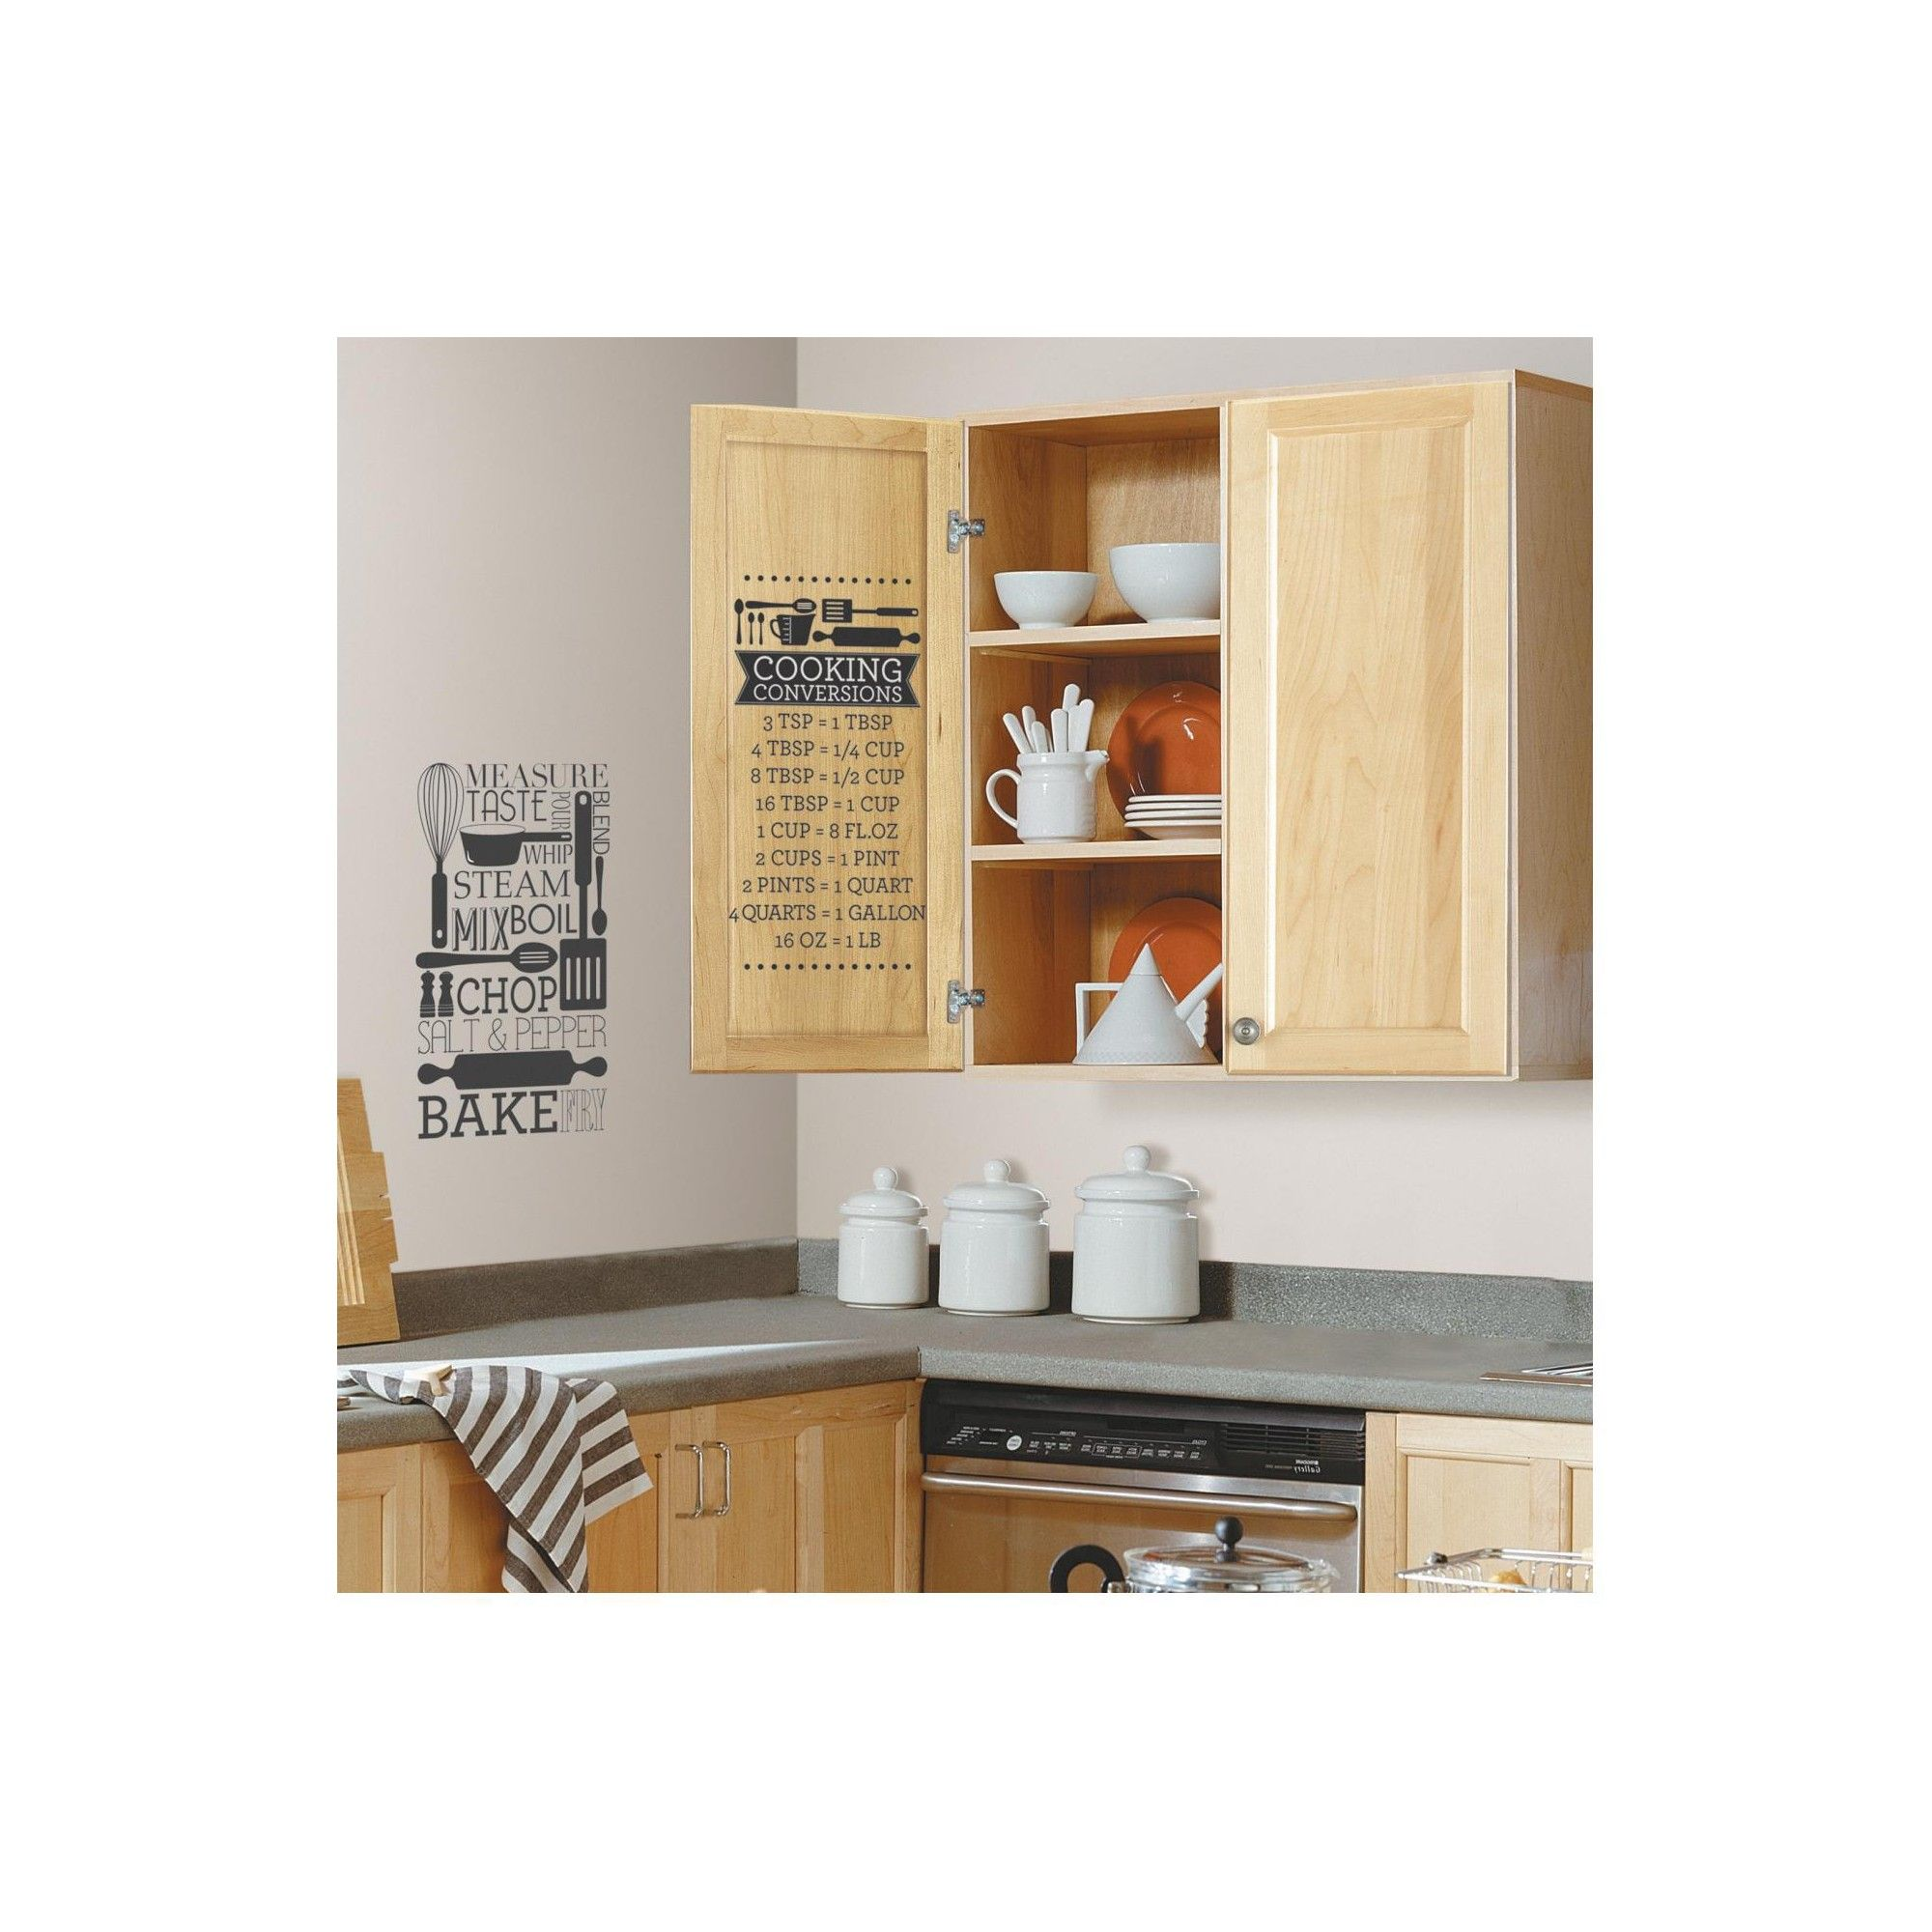 RoomMates Cooking Conversions Peel and Stick Wall Decals